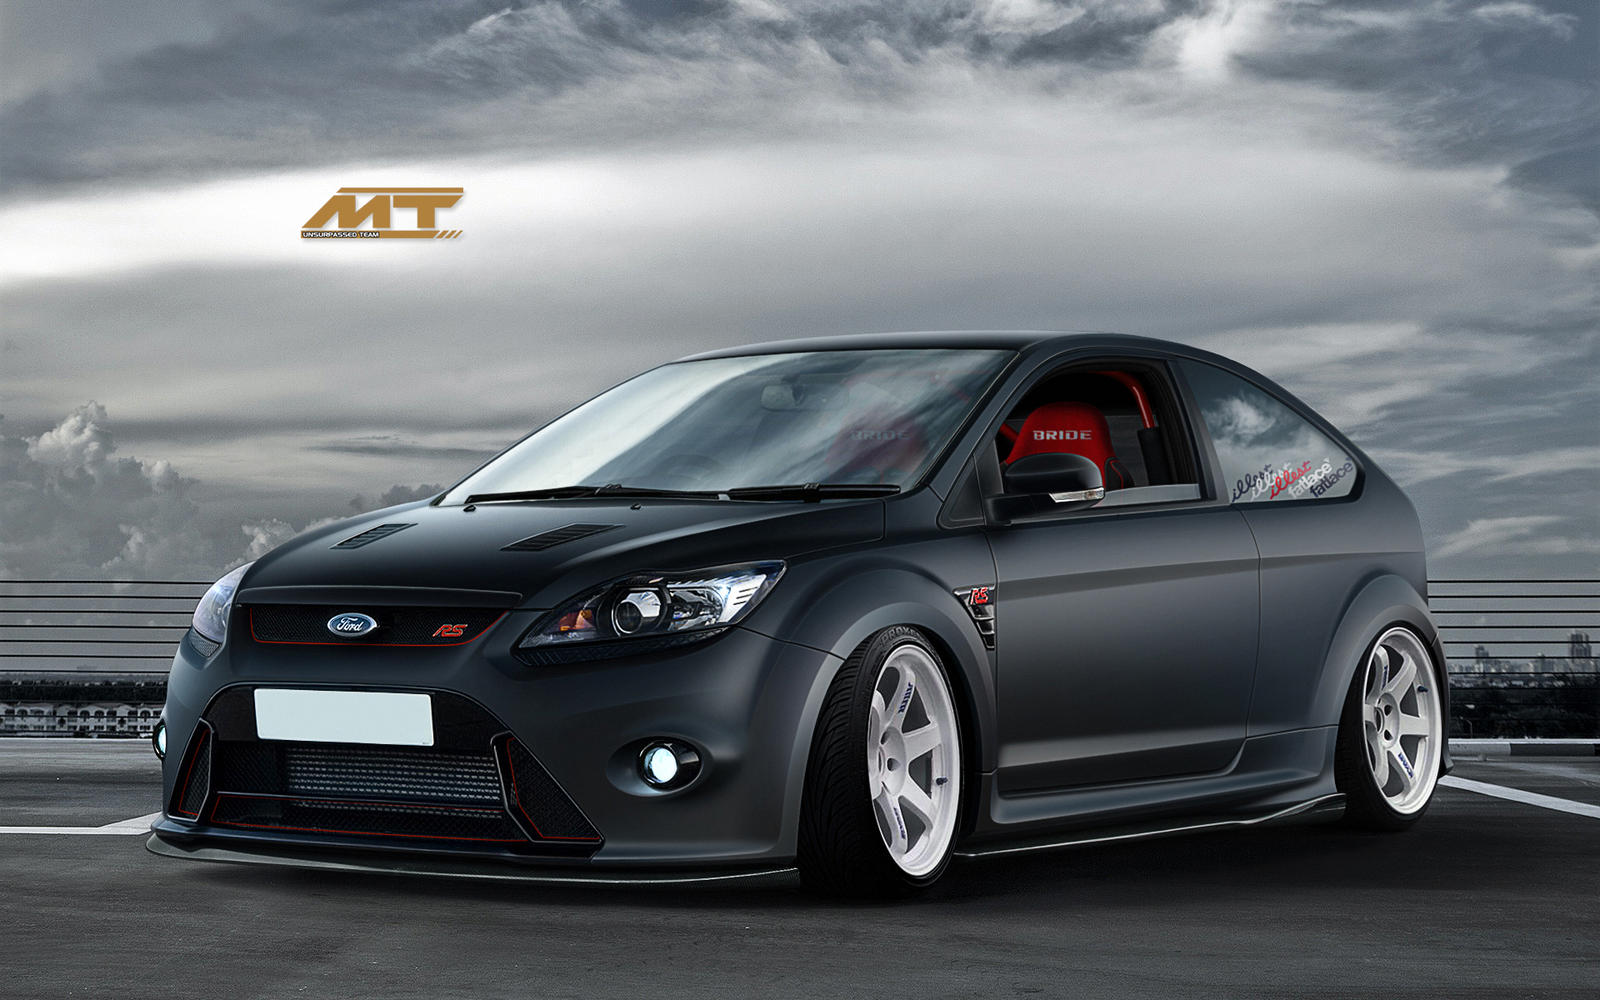 ford focus rs by murillodesign on deviantart. Black Bedroom Furniture Sets. Home Design Ideas